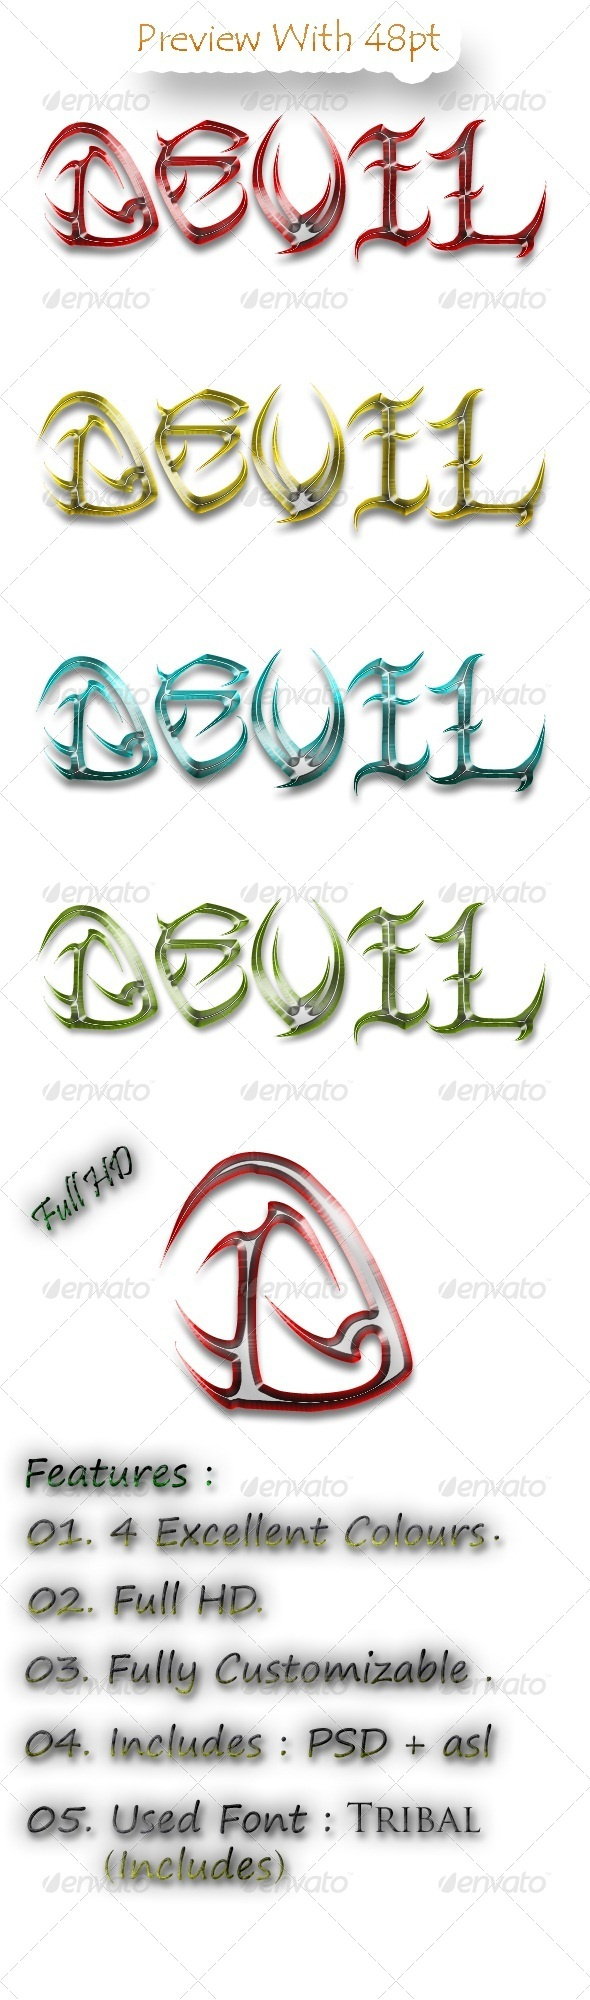 GraphicRiver Devil Text Style Pack v1.0 5666515